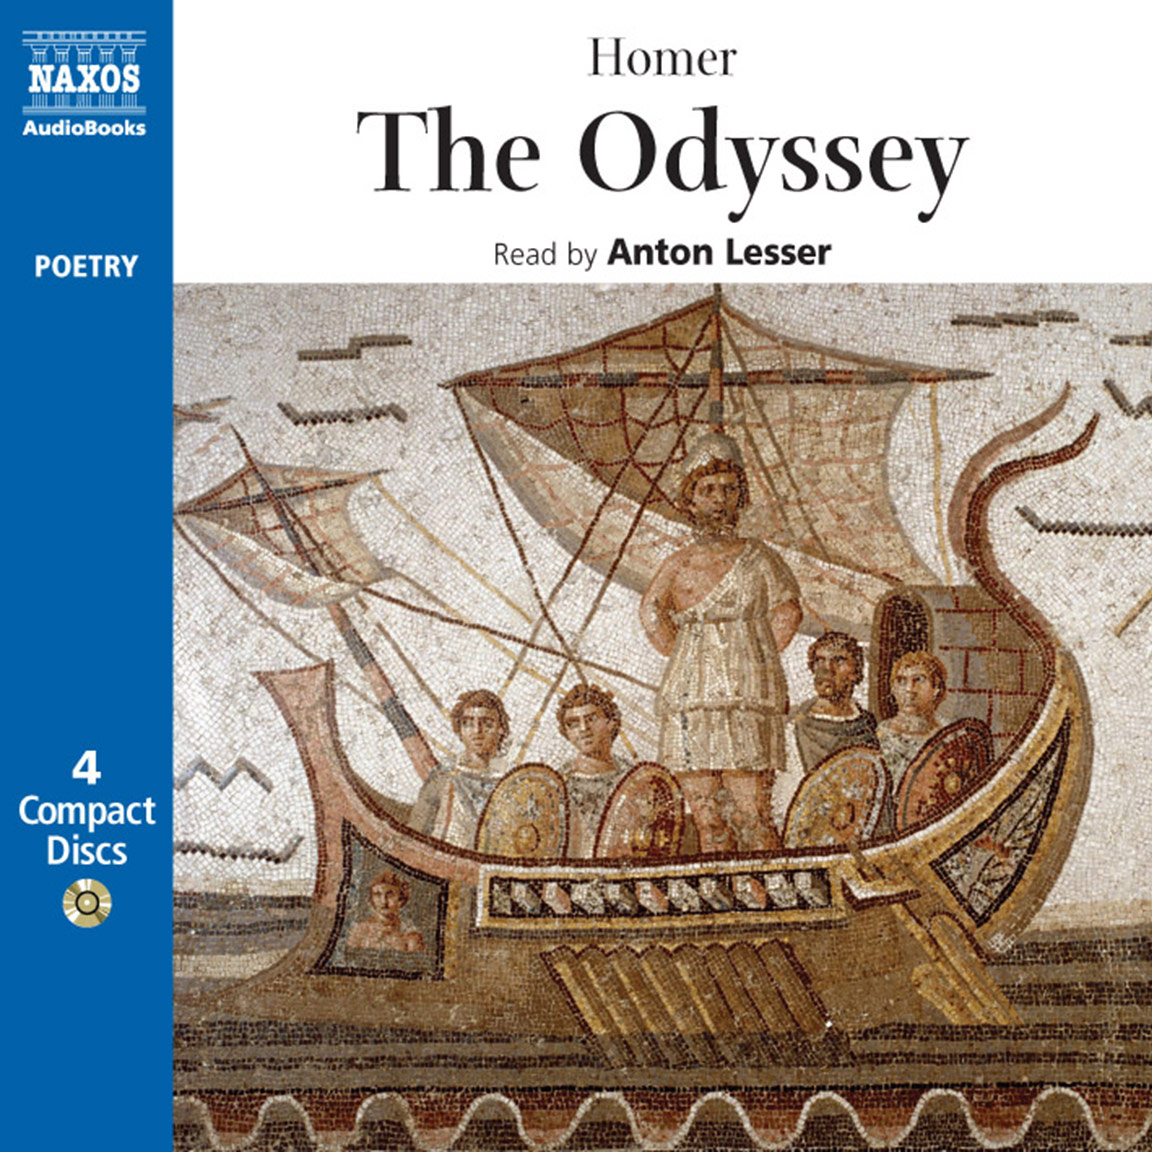 thesis statement for the odyssey by homer Download thesis statement on hospitality in the odyssey in our database or order an original thesis paper that will be written by one of.